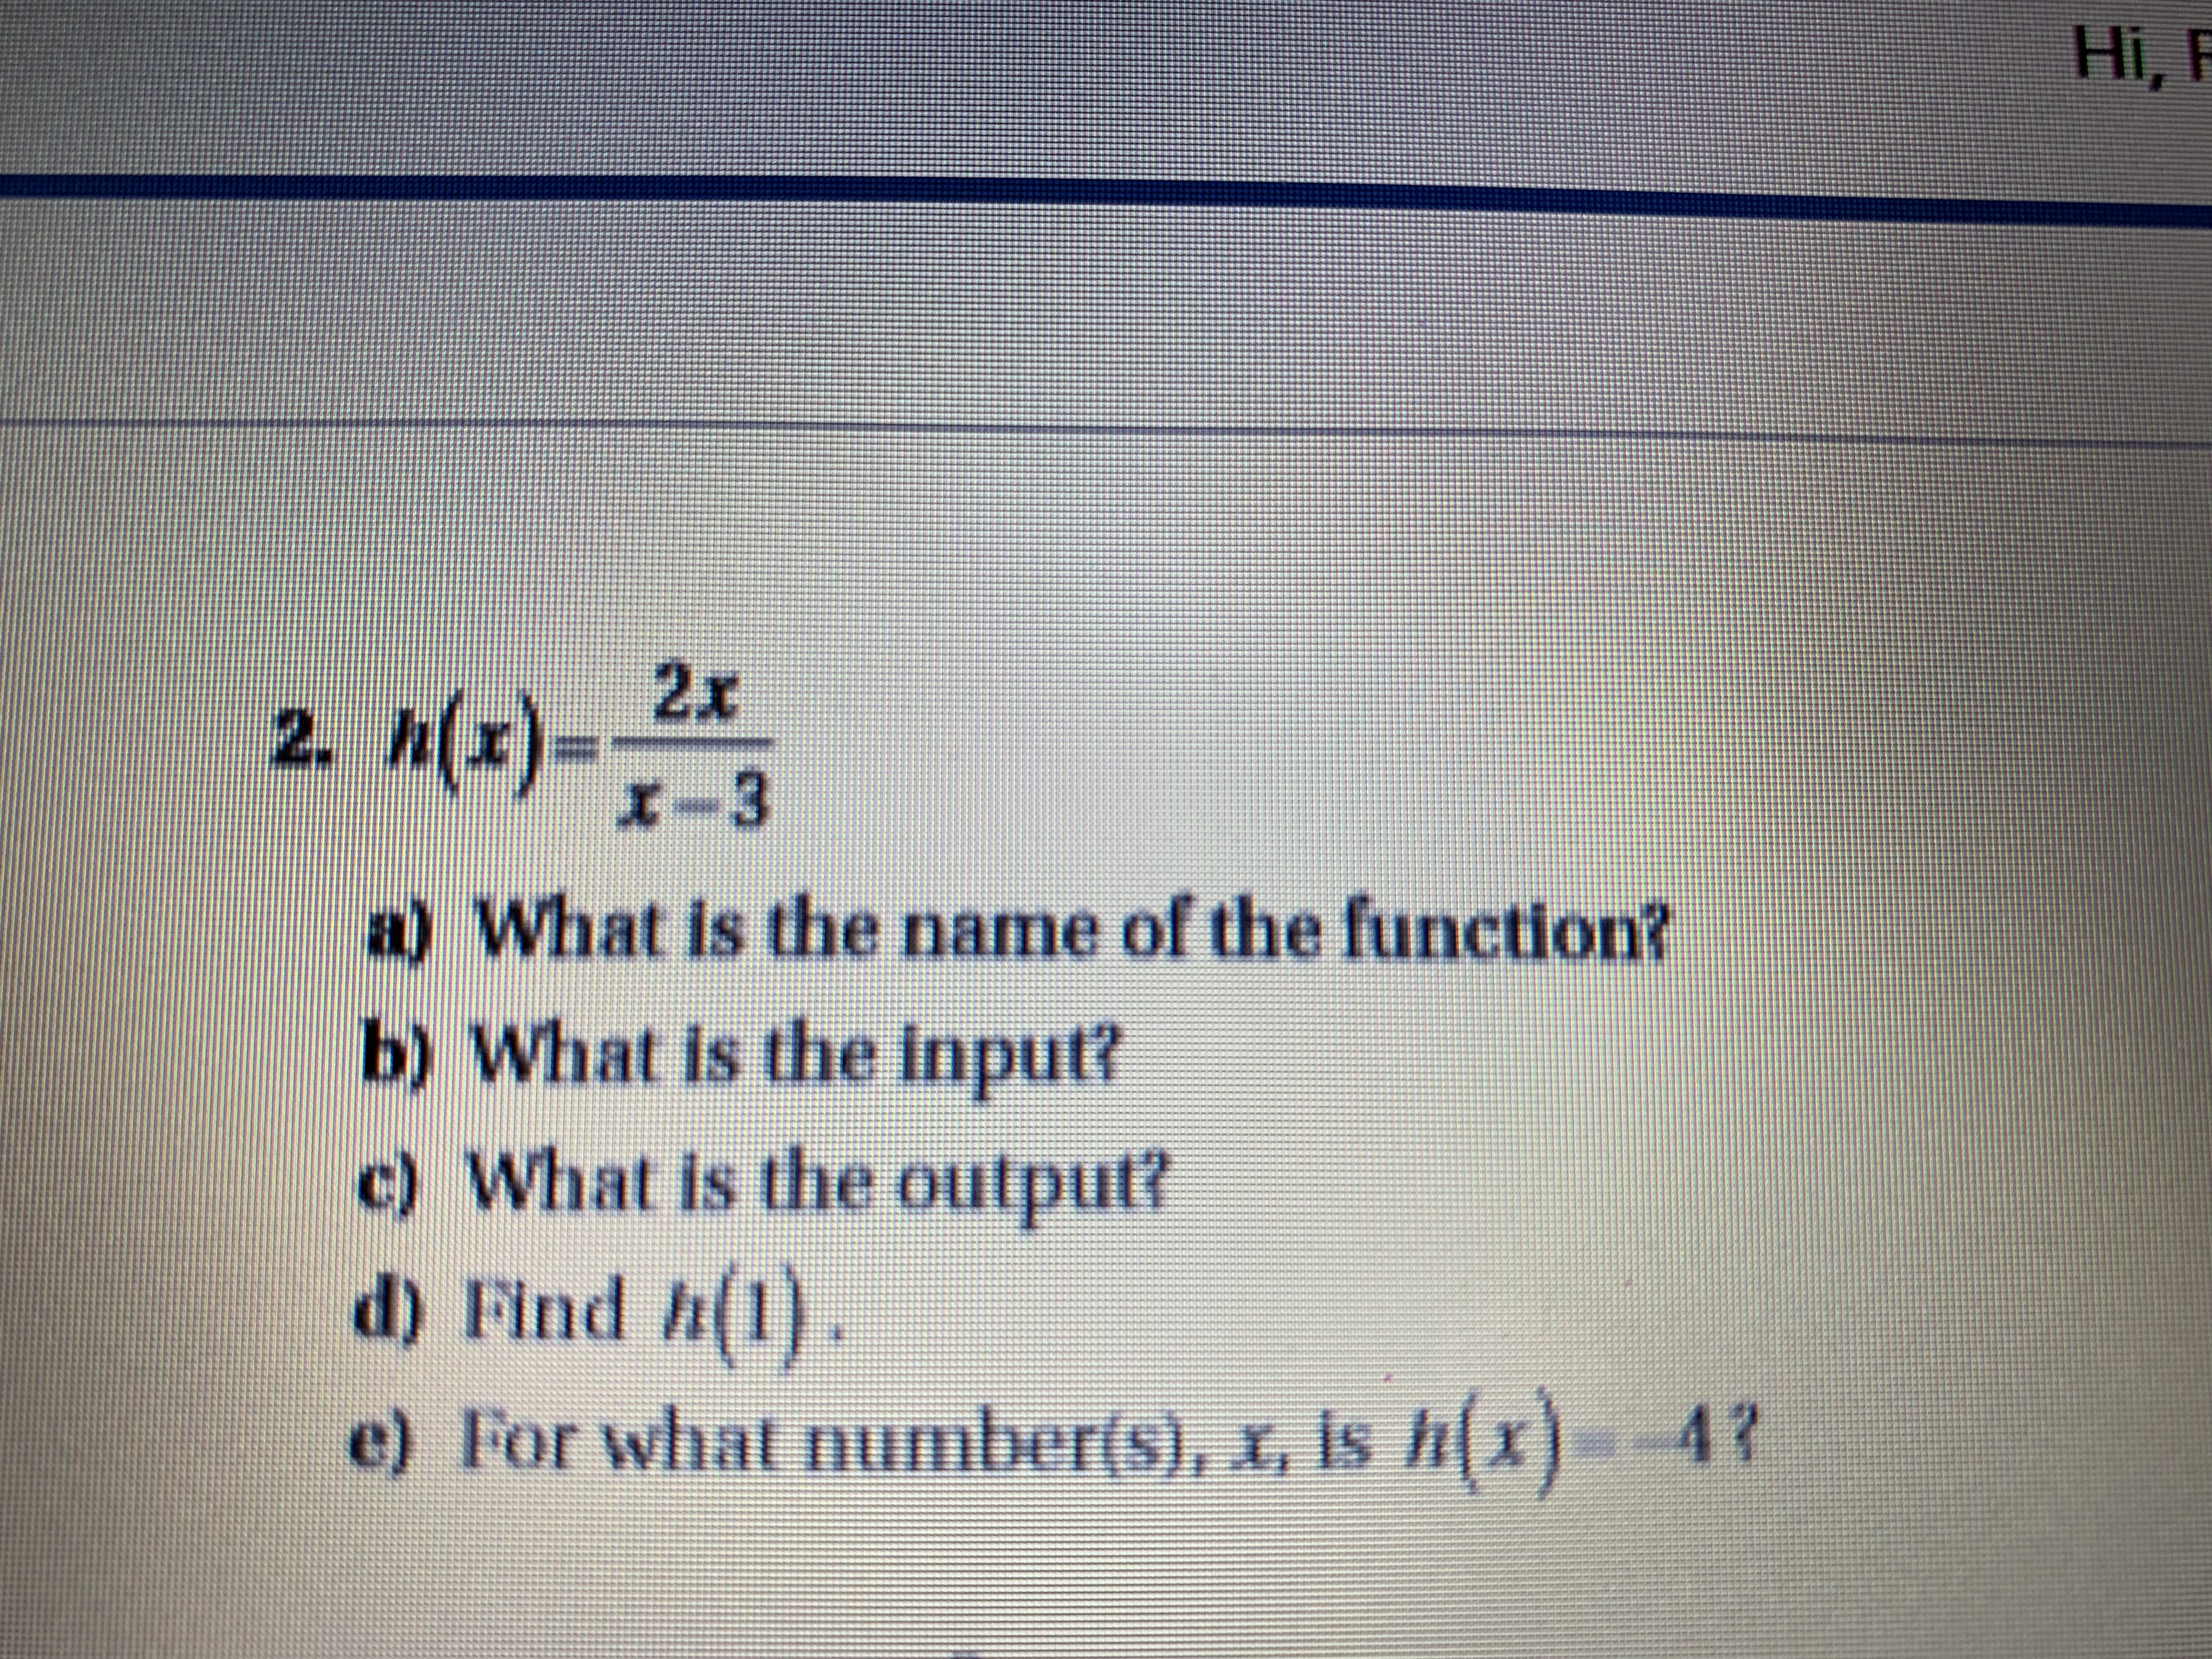 Hi, F 2x 2. Mz)= -3 What is the name of the function b) What is the input? c) What is the output? d) Find h(1). 42 e) For what number(s), , is h